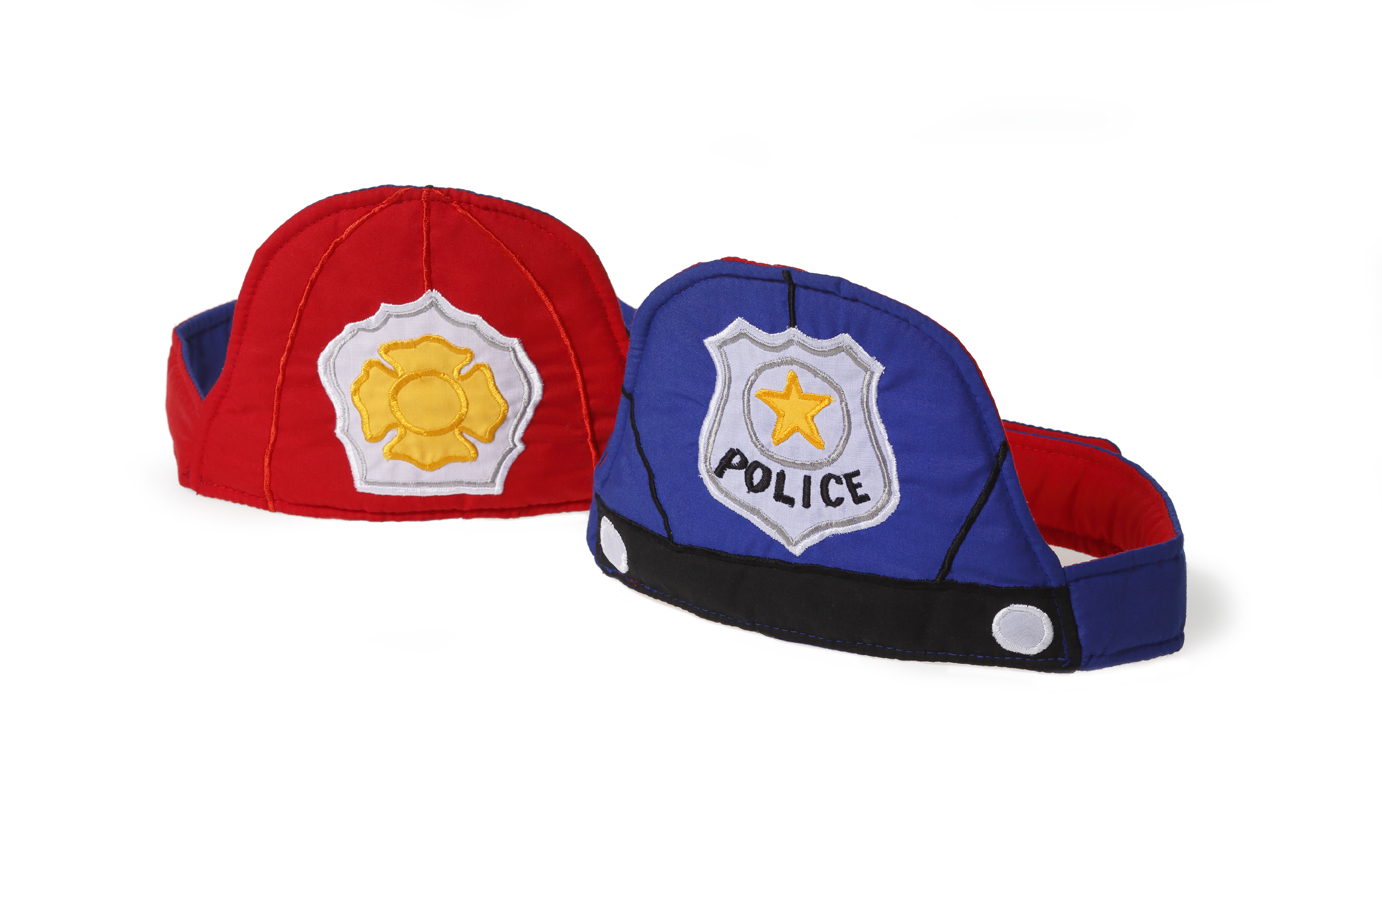 Police and Firefighter 2-in-1